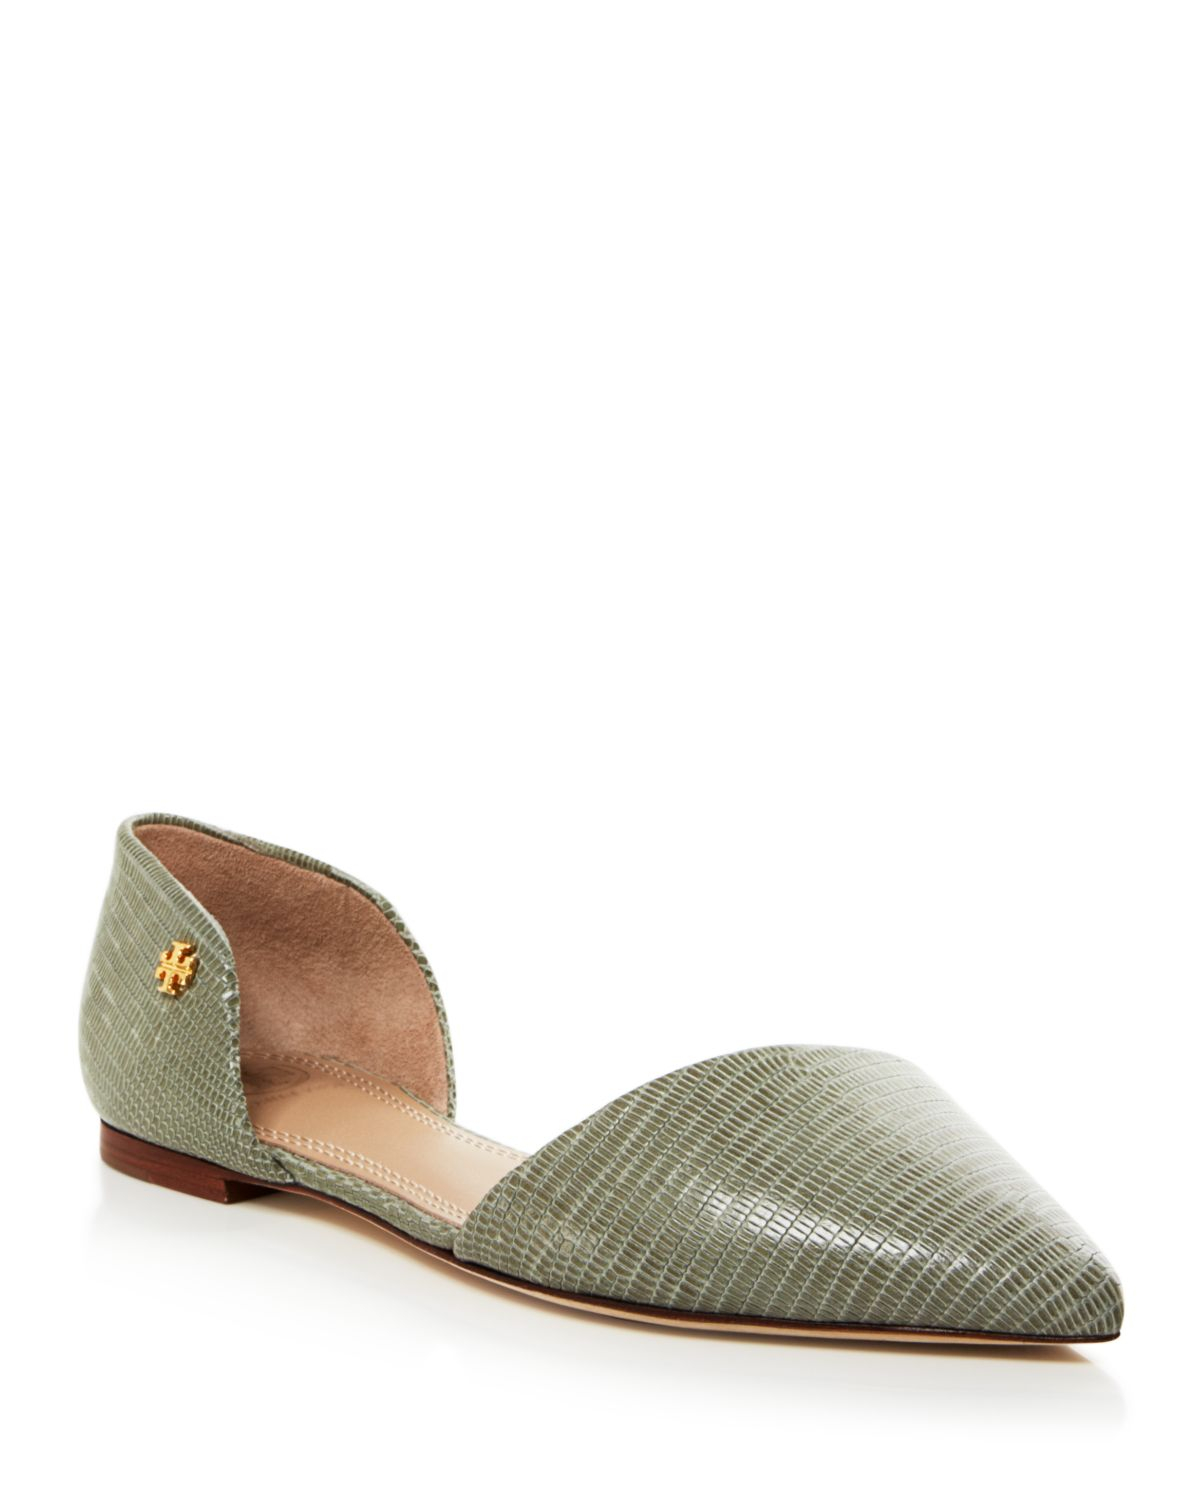 aa7bc75a6750 Lyst - Tory Burch Pointed Toe D orsay Flats - Viv in Gray